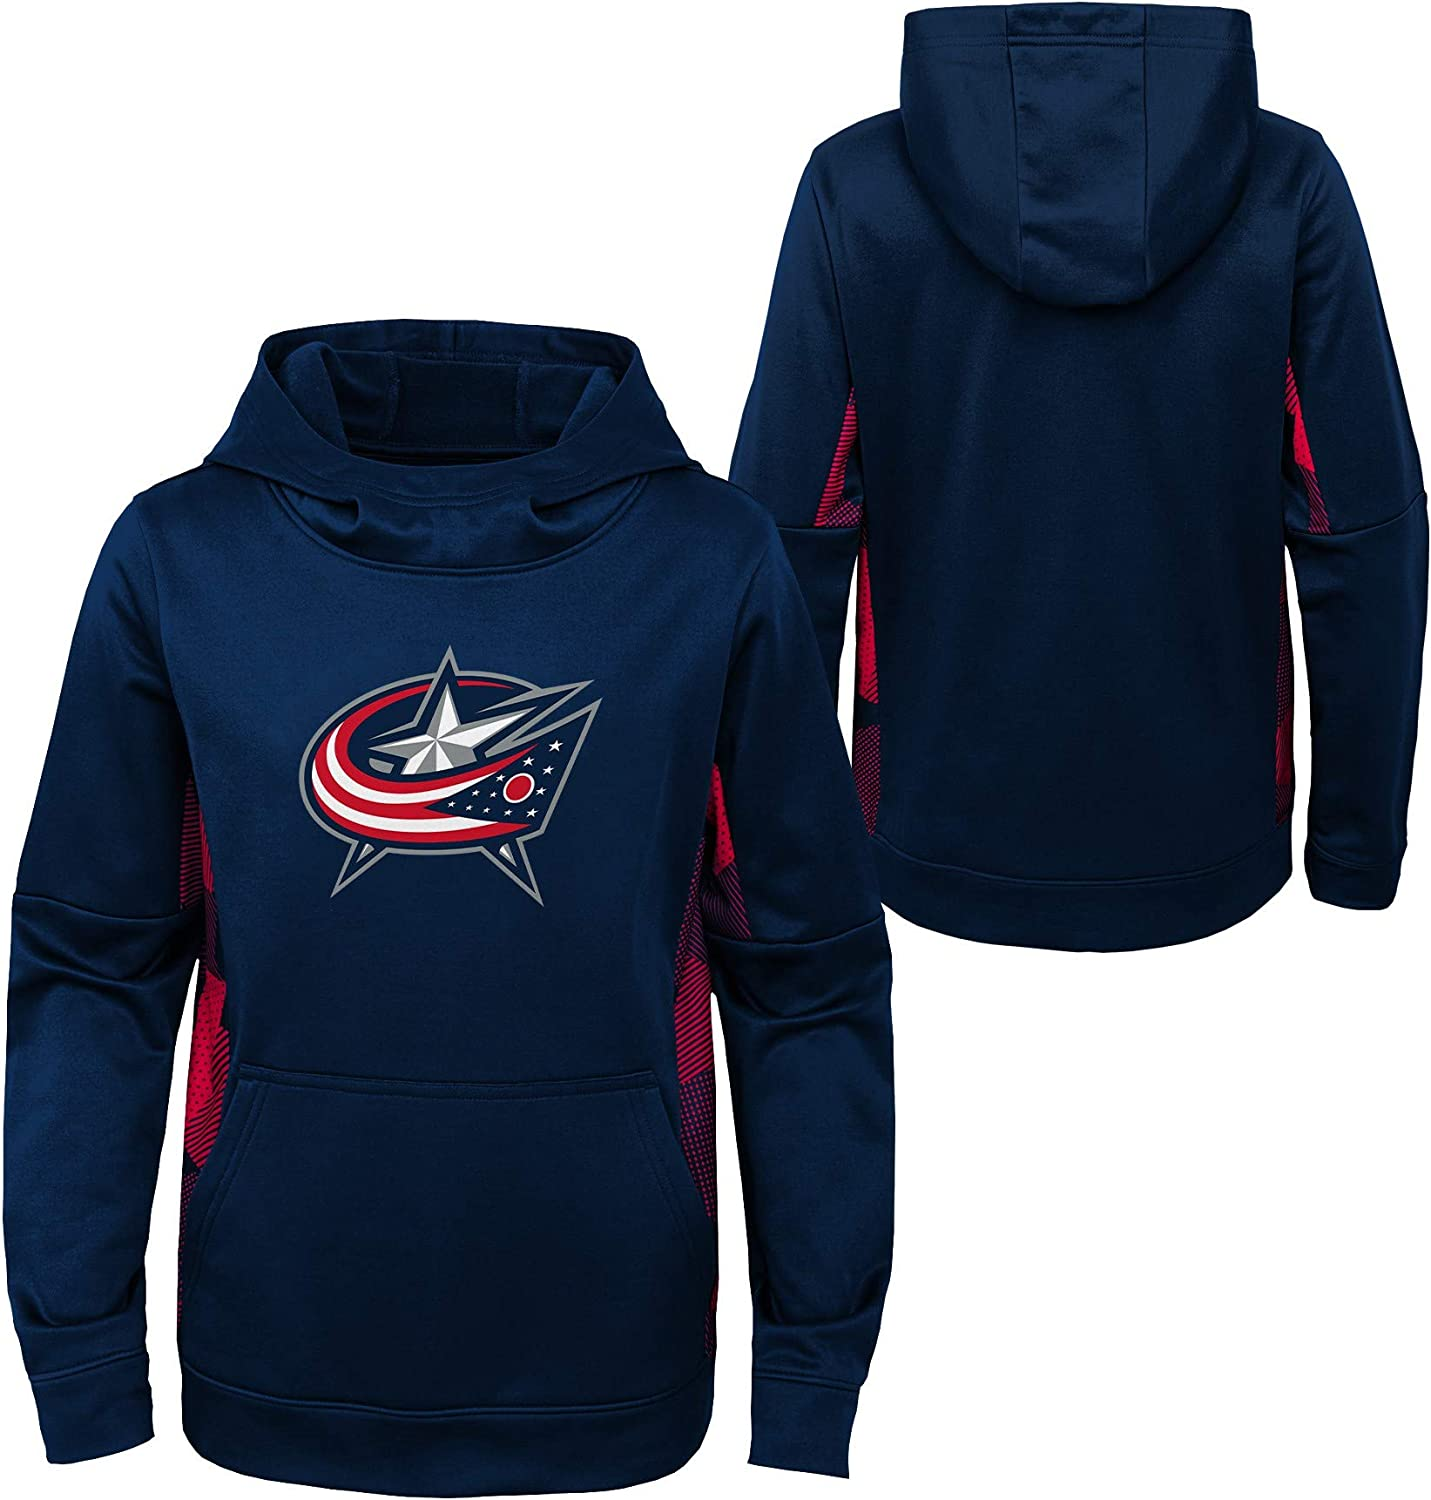 OuterStuff Youth NHL Columbus Blue Jackets Performance Hoodie Youth Sizing